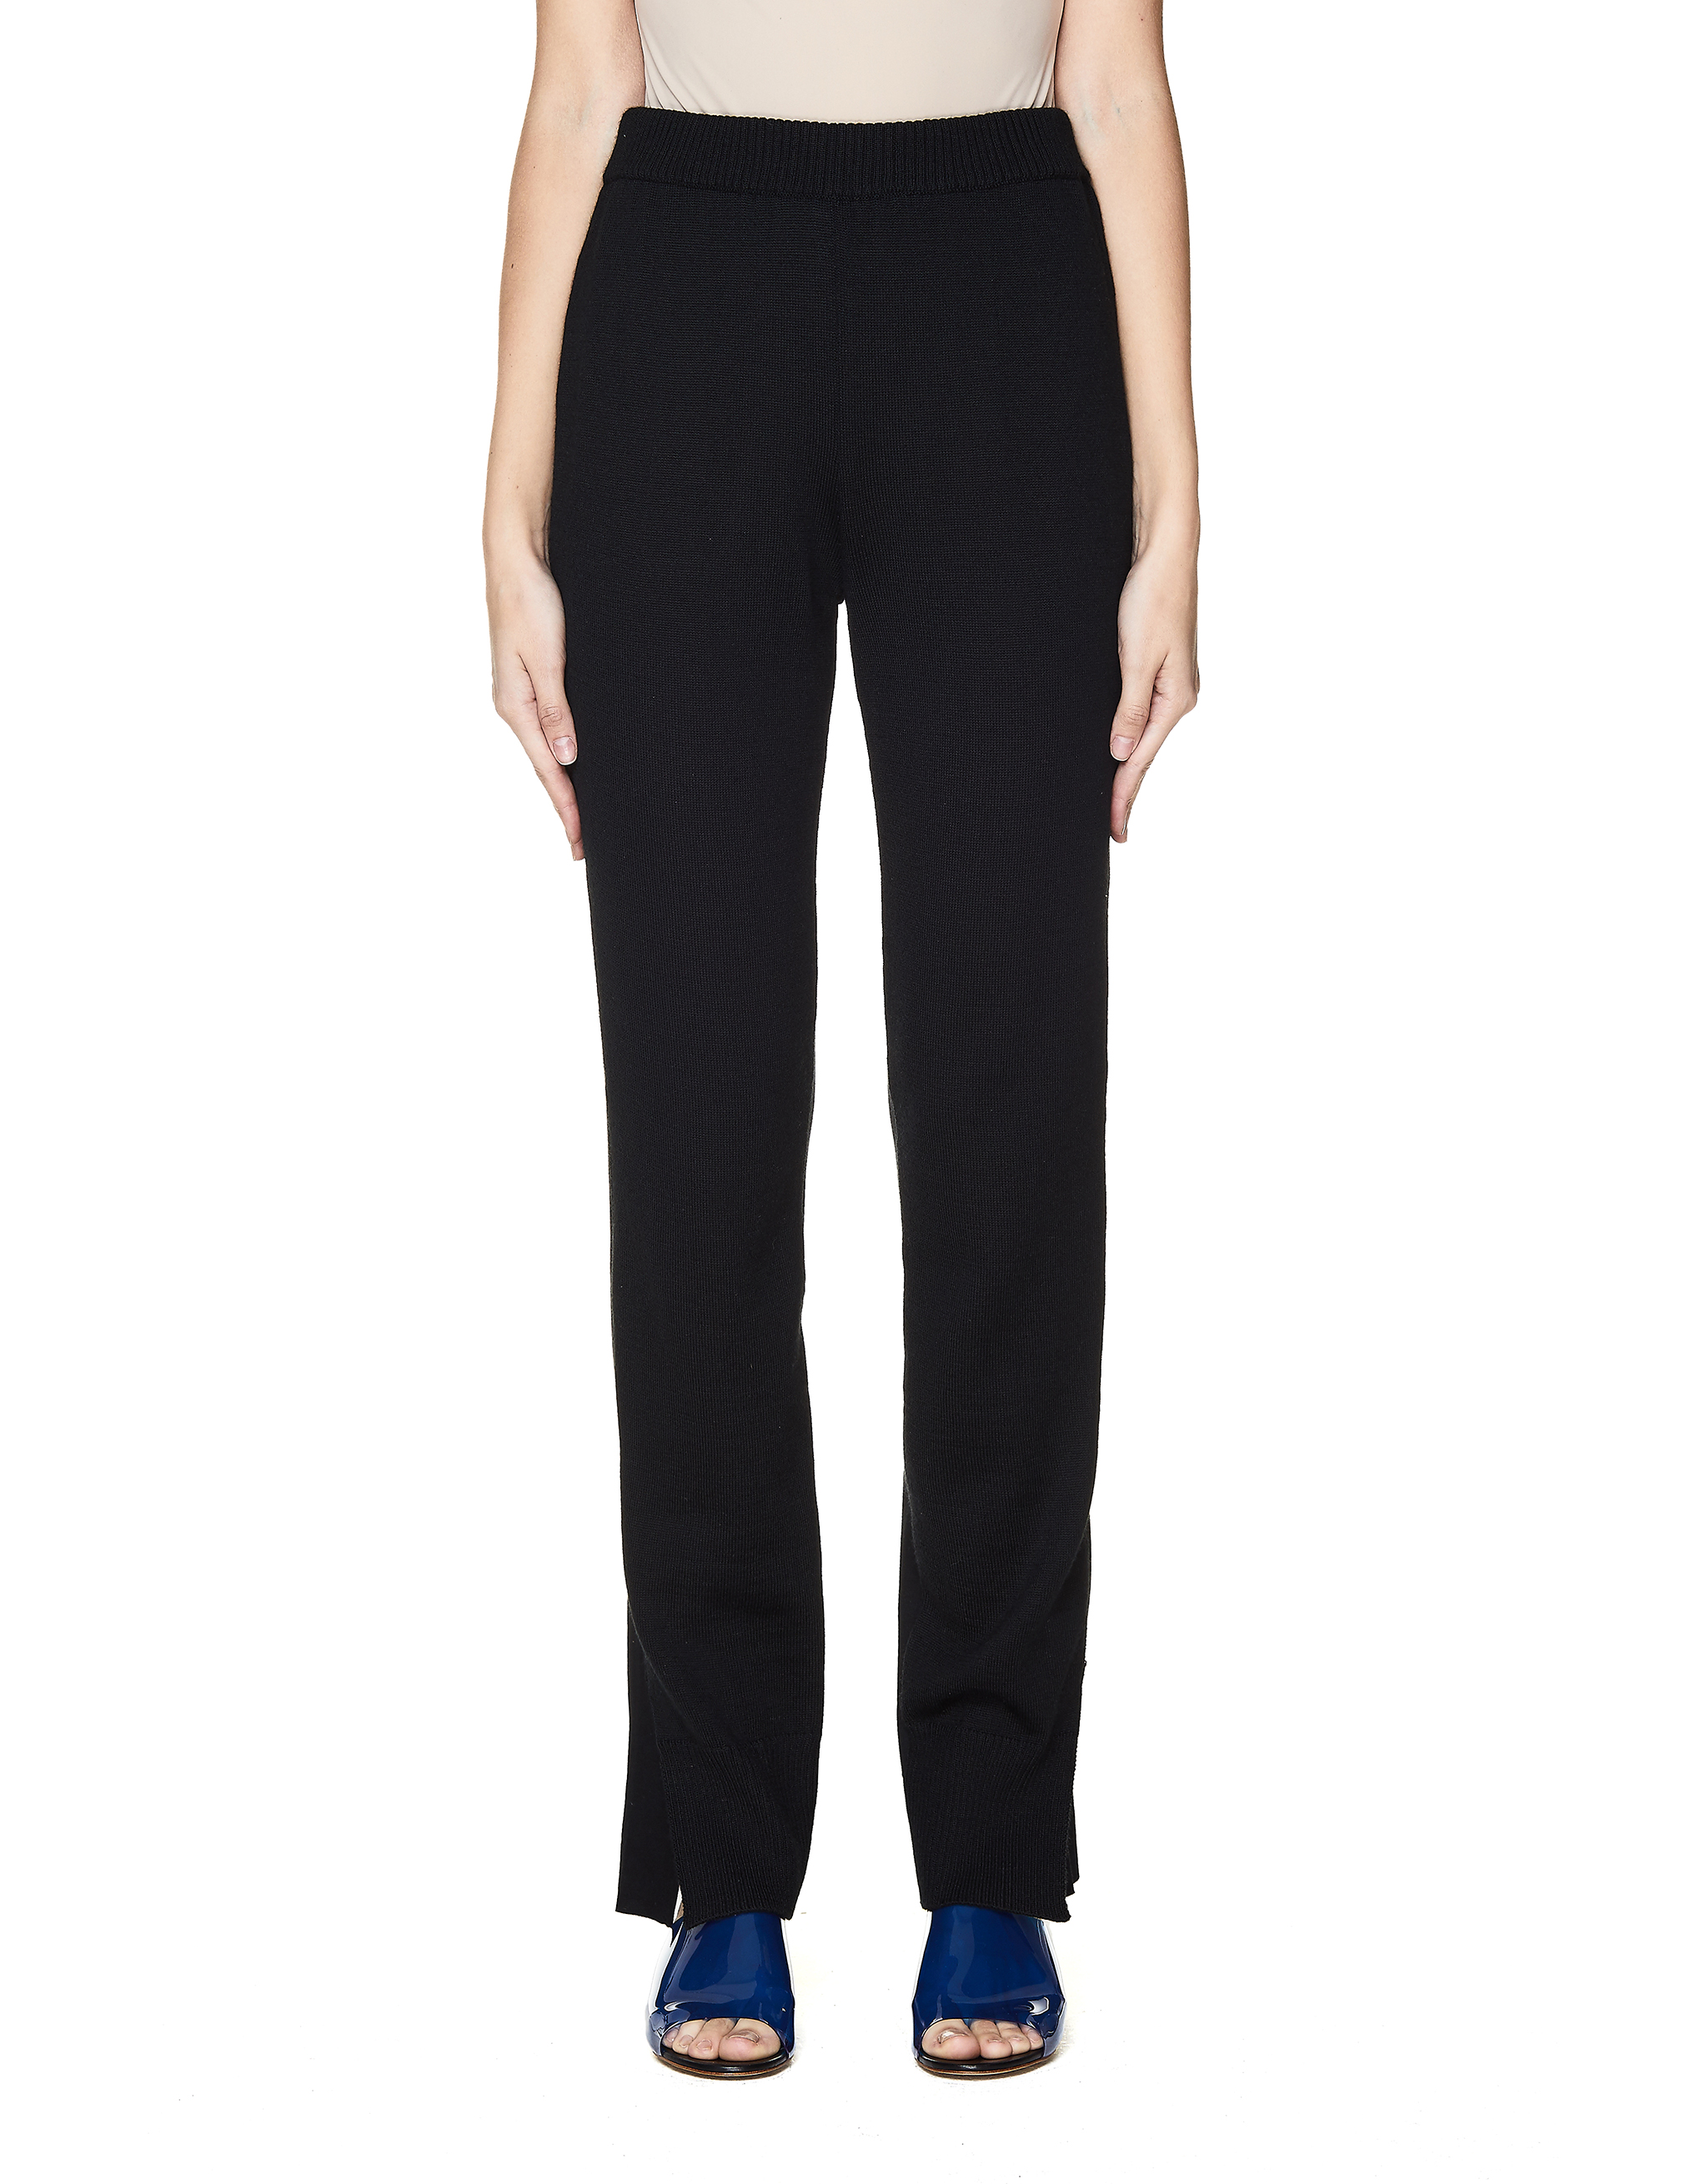 Undercover Black Knitted Front Trousers